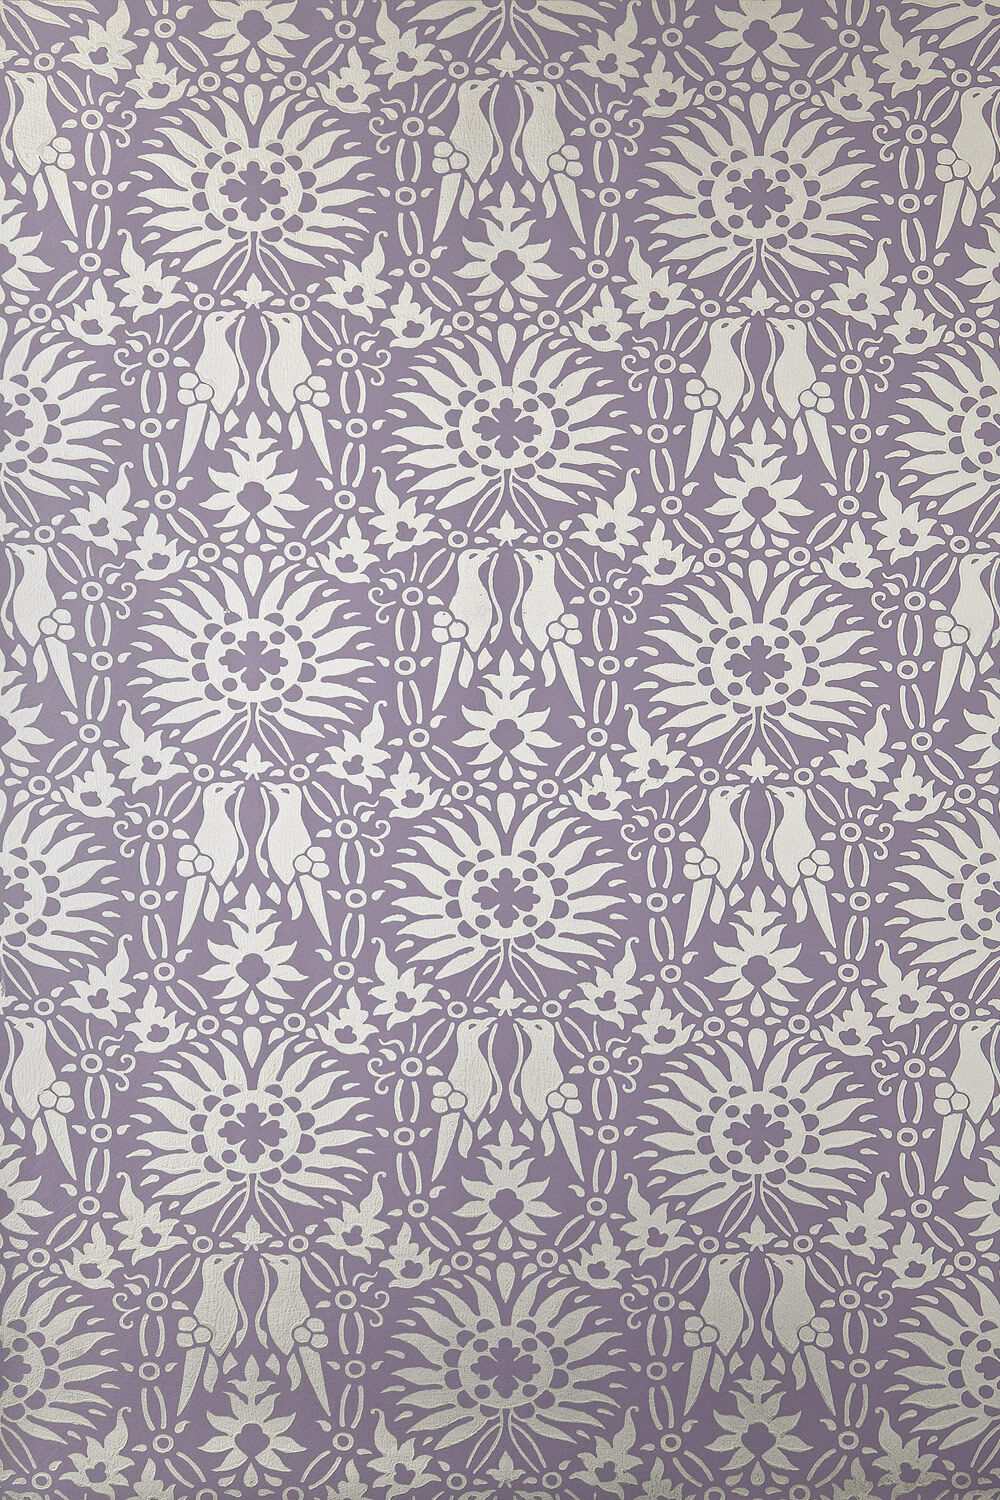 Farrow and Ball 100% Finest Ingredients Painted Wallpaper Renaissance BP 2809